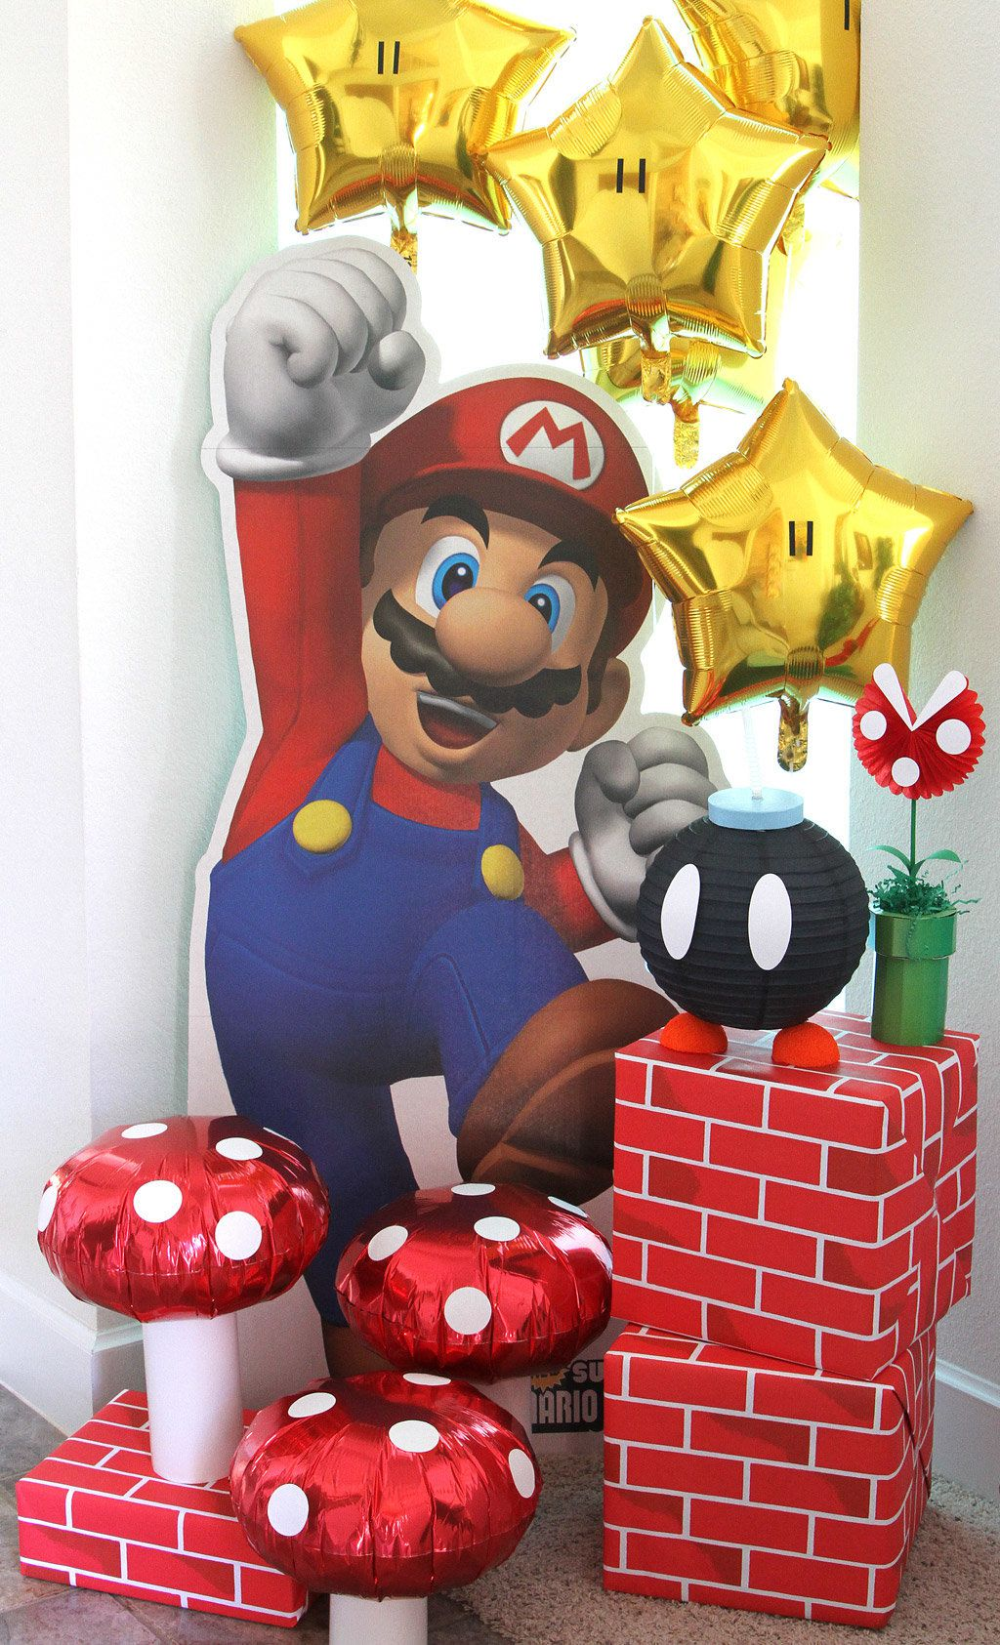 Super Mario Party Ideas Kids Party Ideas At Birthday In A Box Mario Bros Party Super Mario Bros Party Super Mario Bros Birthday Party